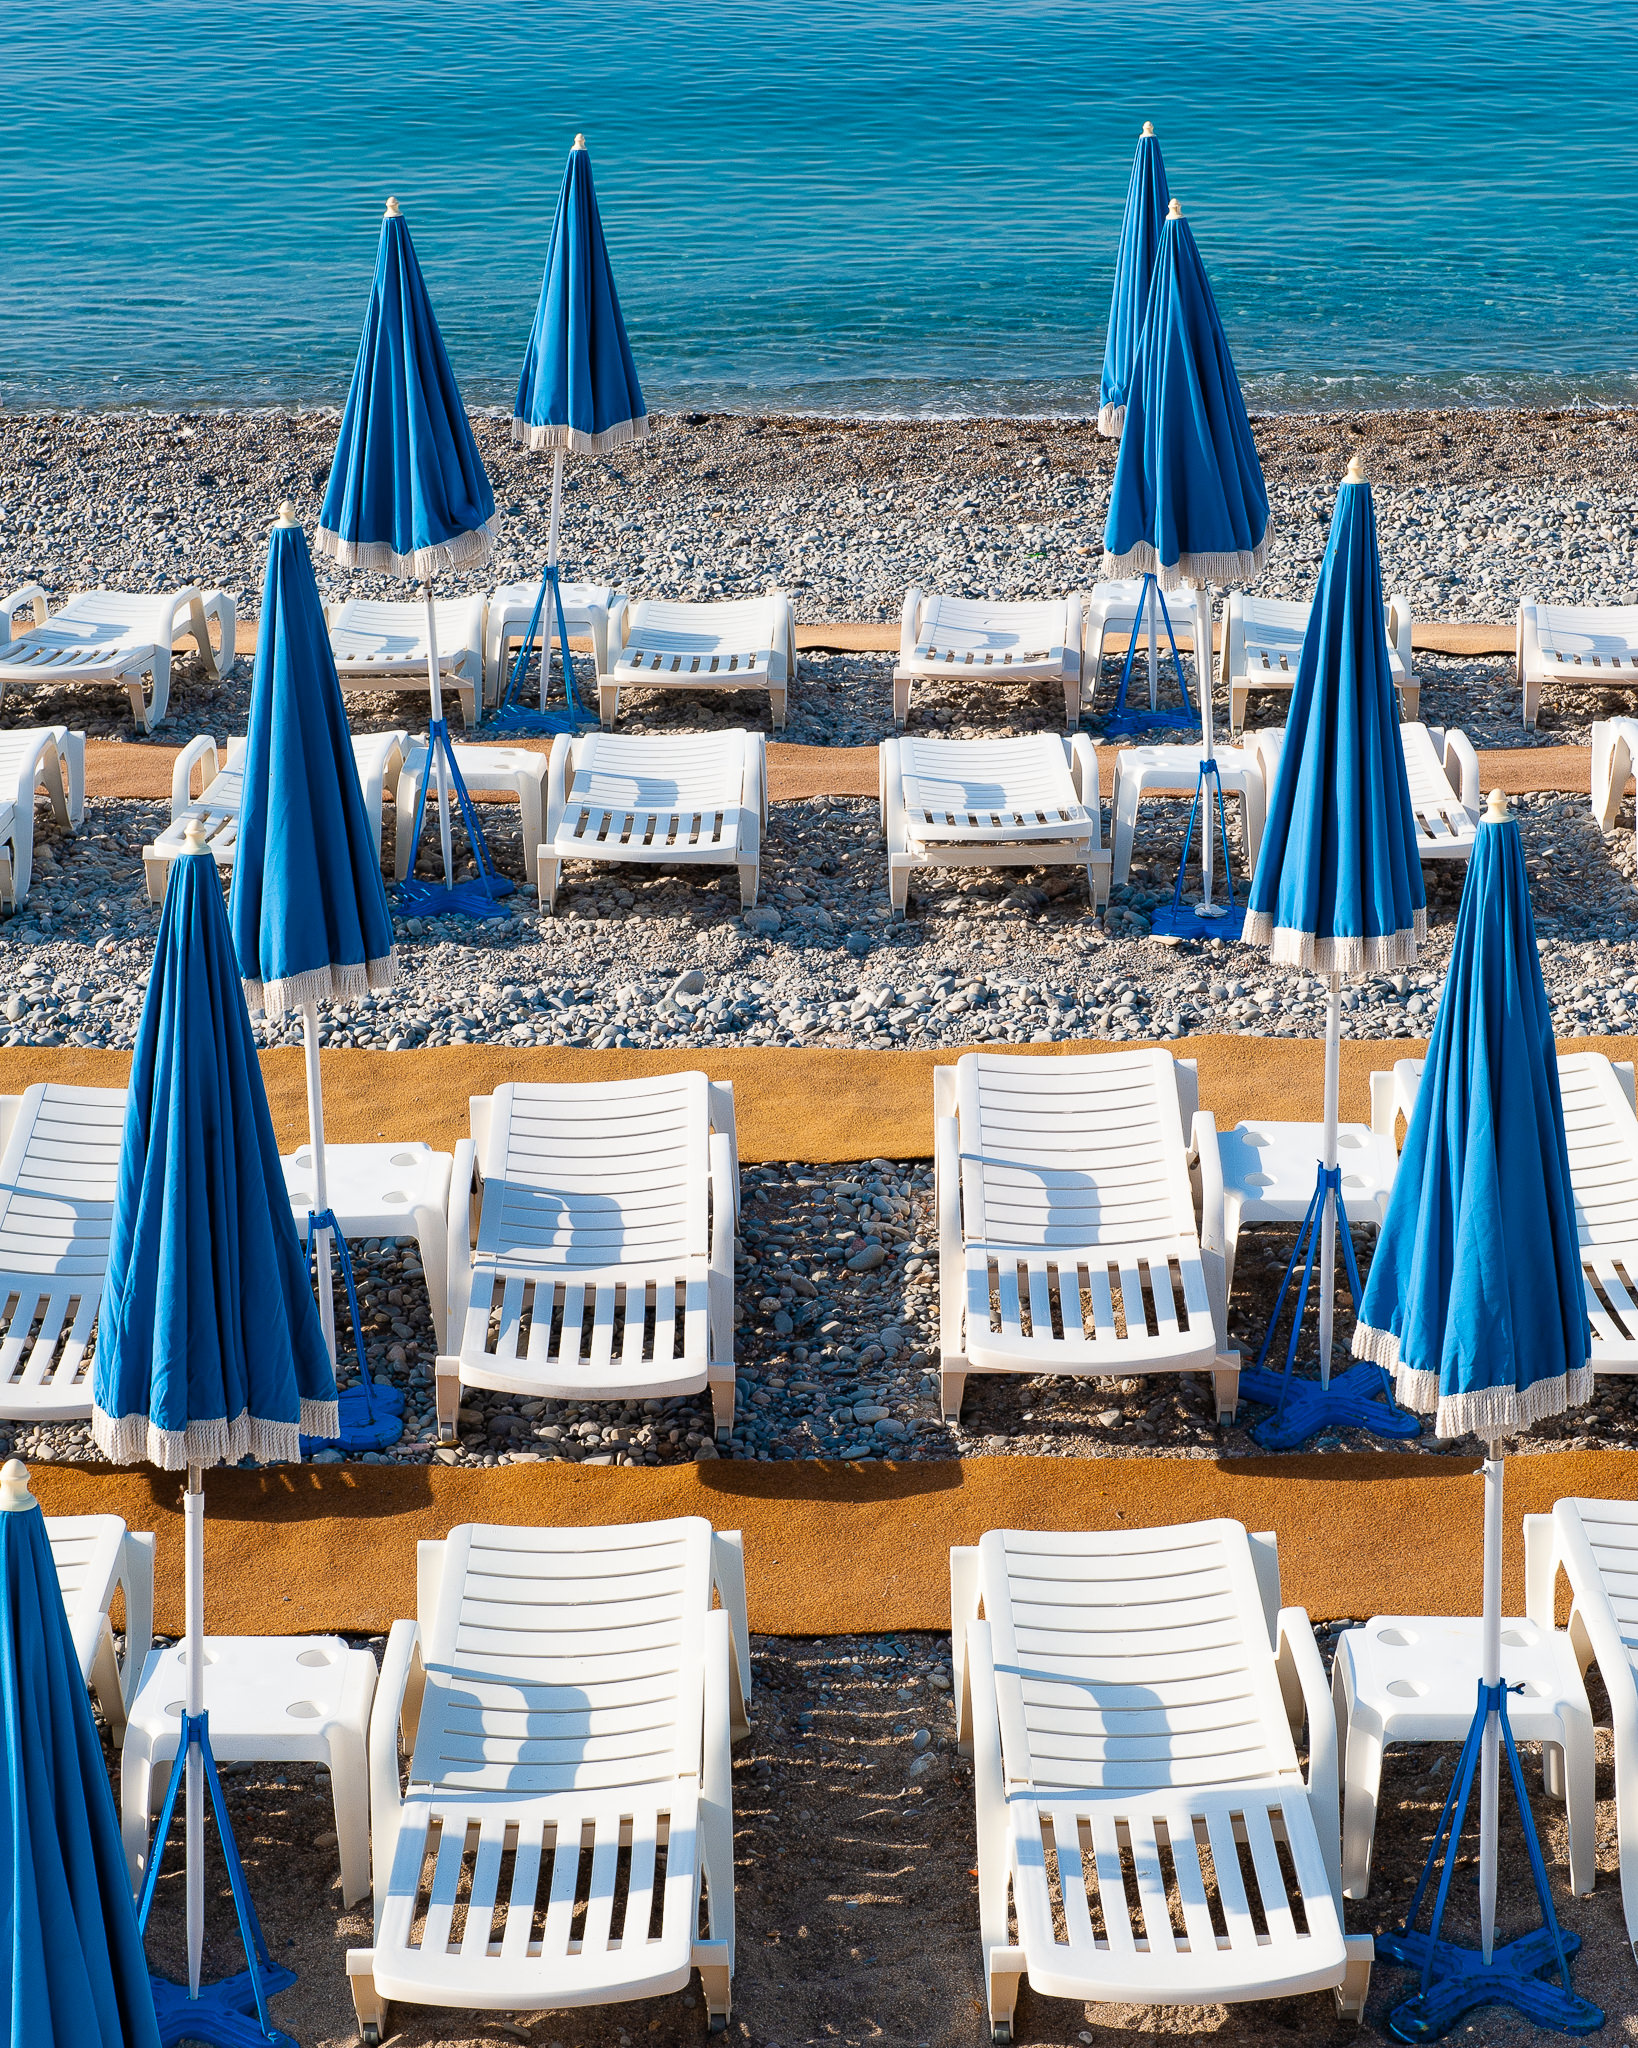 a photo of beach chairs in nice france